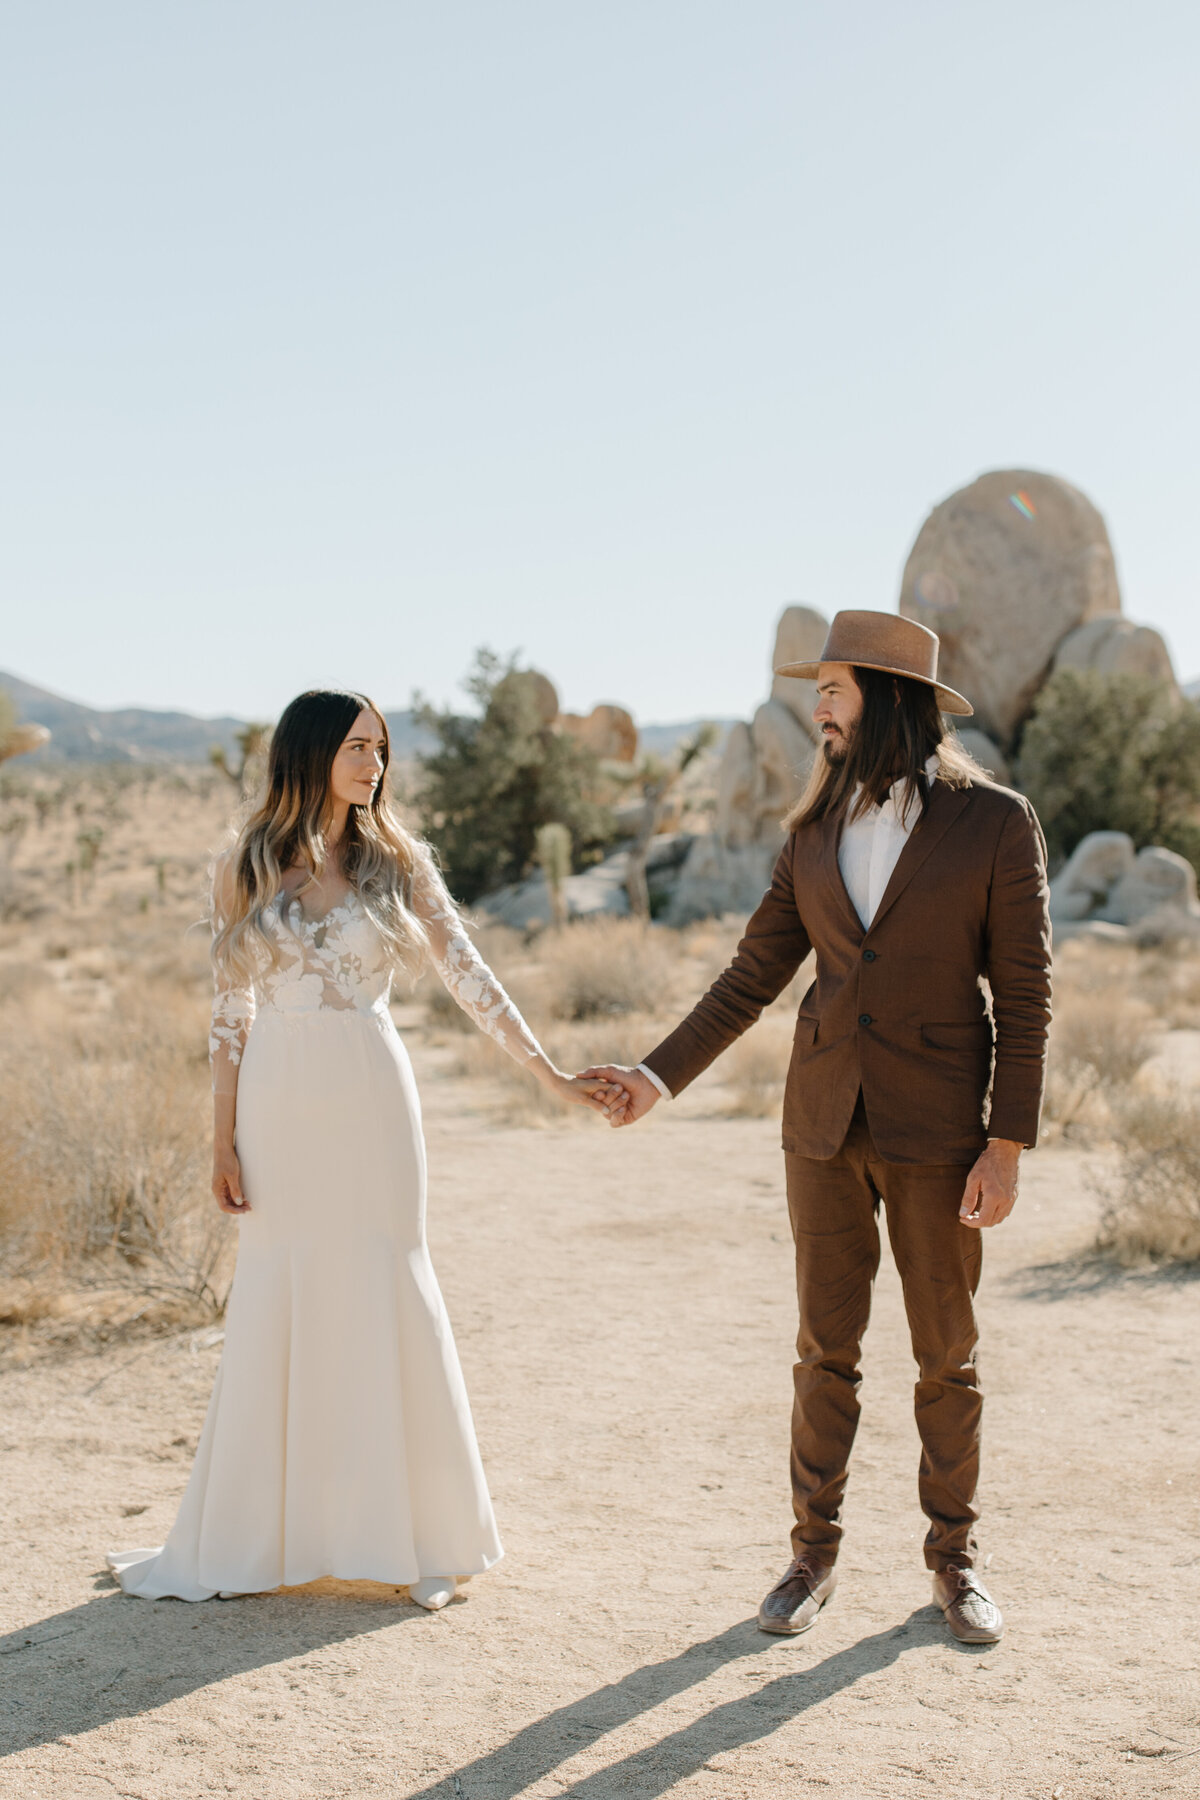 Kristy & Mitchell - Le Haute Desert Aerie Elopement - Tess Laureen Photography @tesslaureen - 49